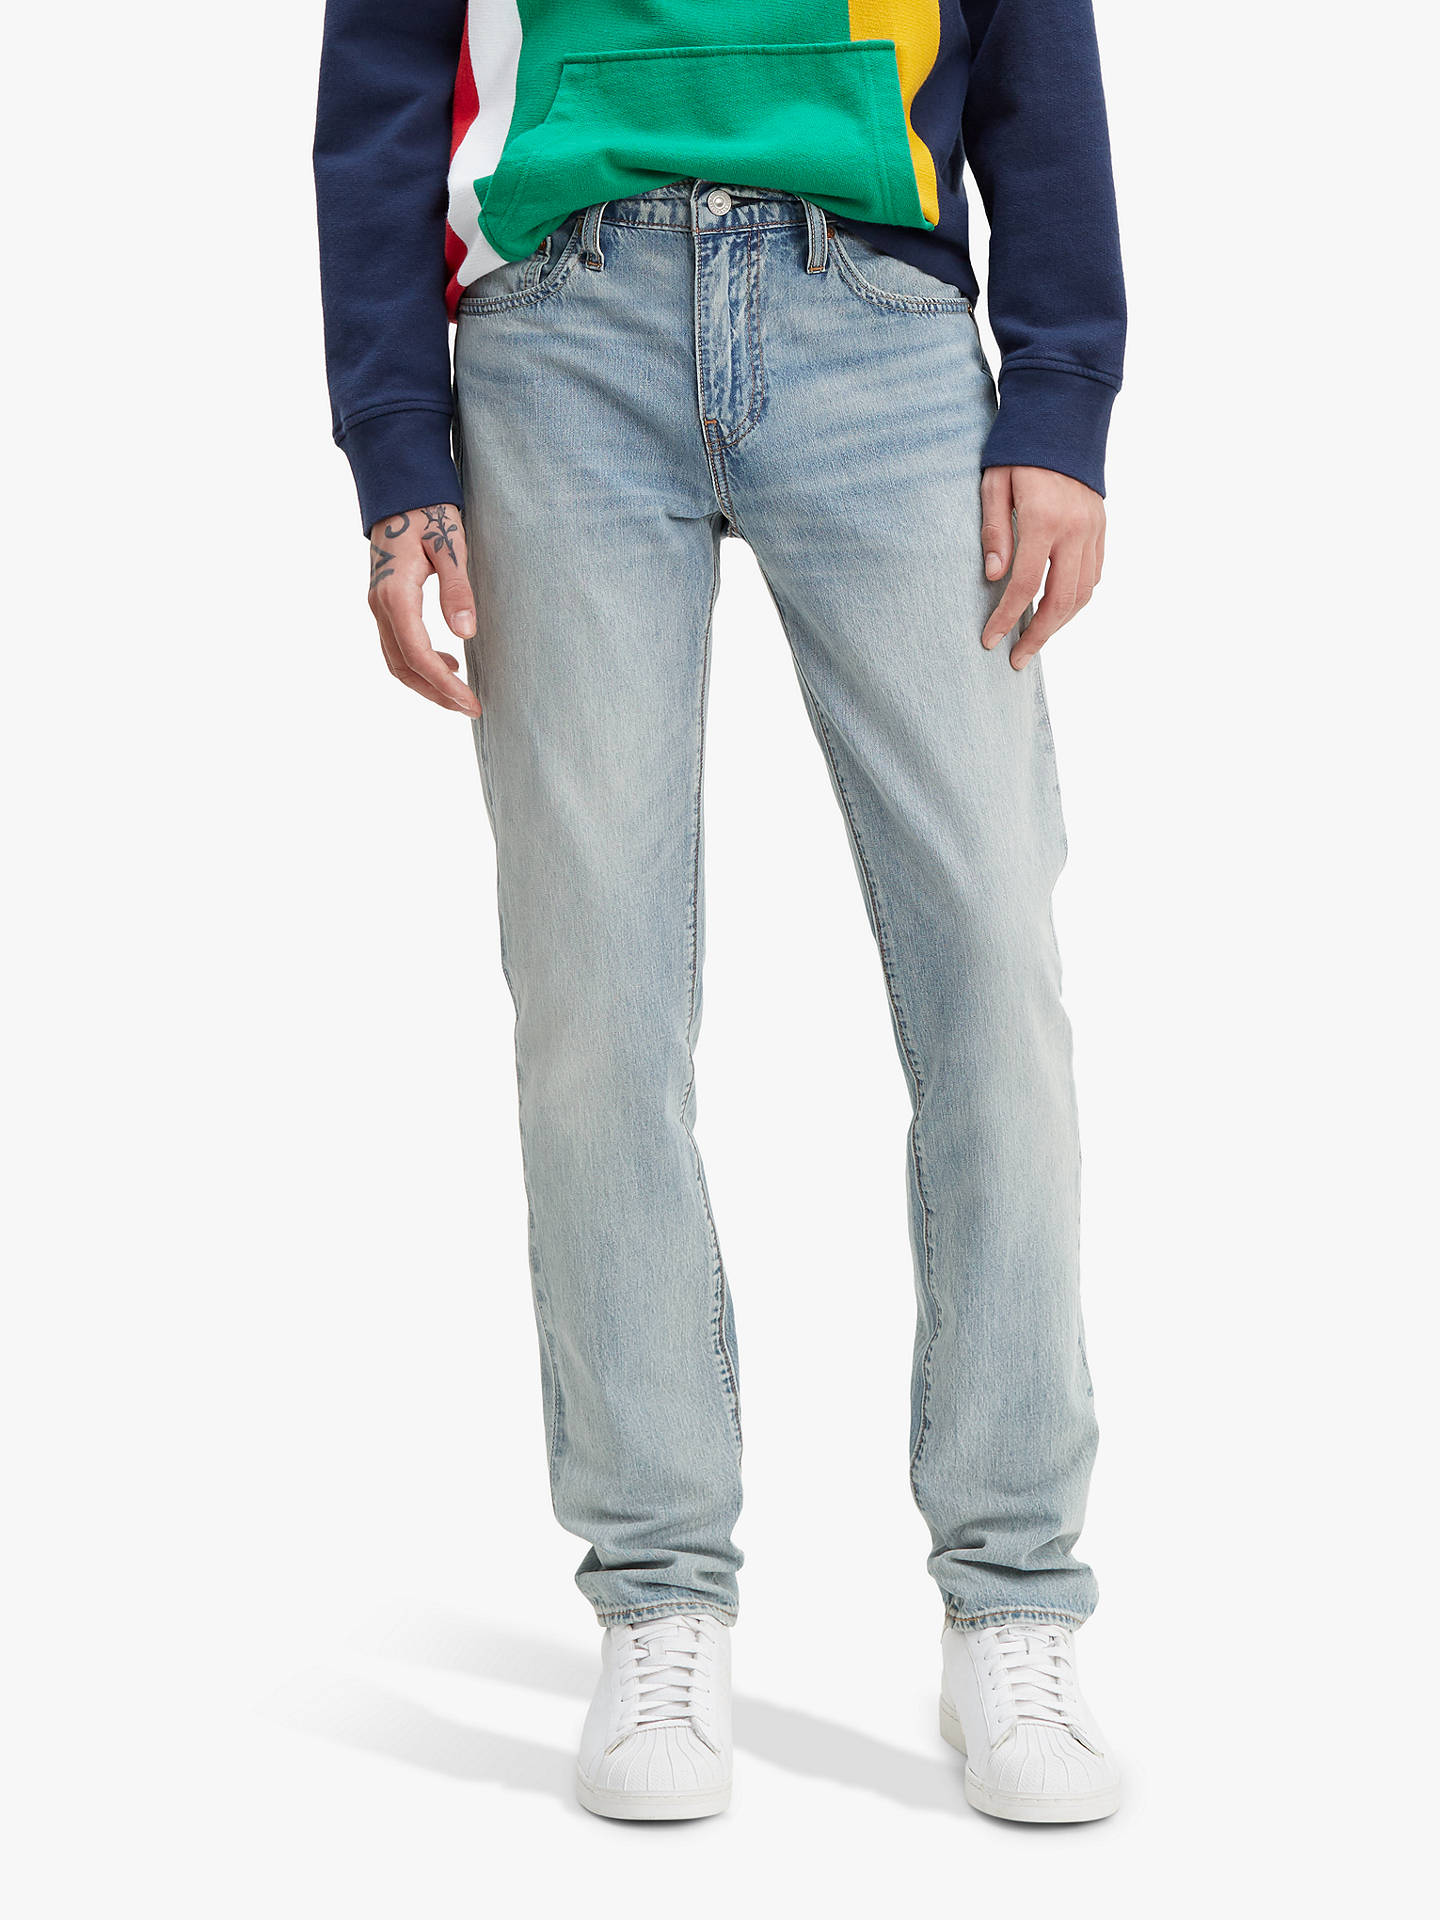 4d2be739e99 Buy Levi's 511 Slim Fit Stretch Cool Jeans, Great White, 32R Online at  johnlewis ...